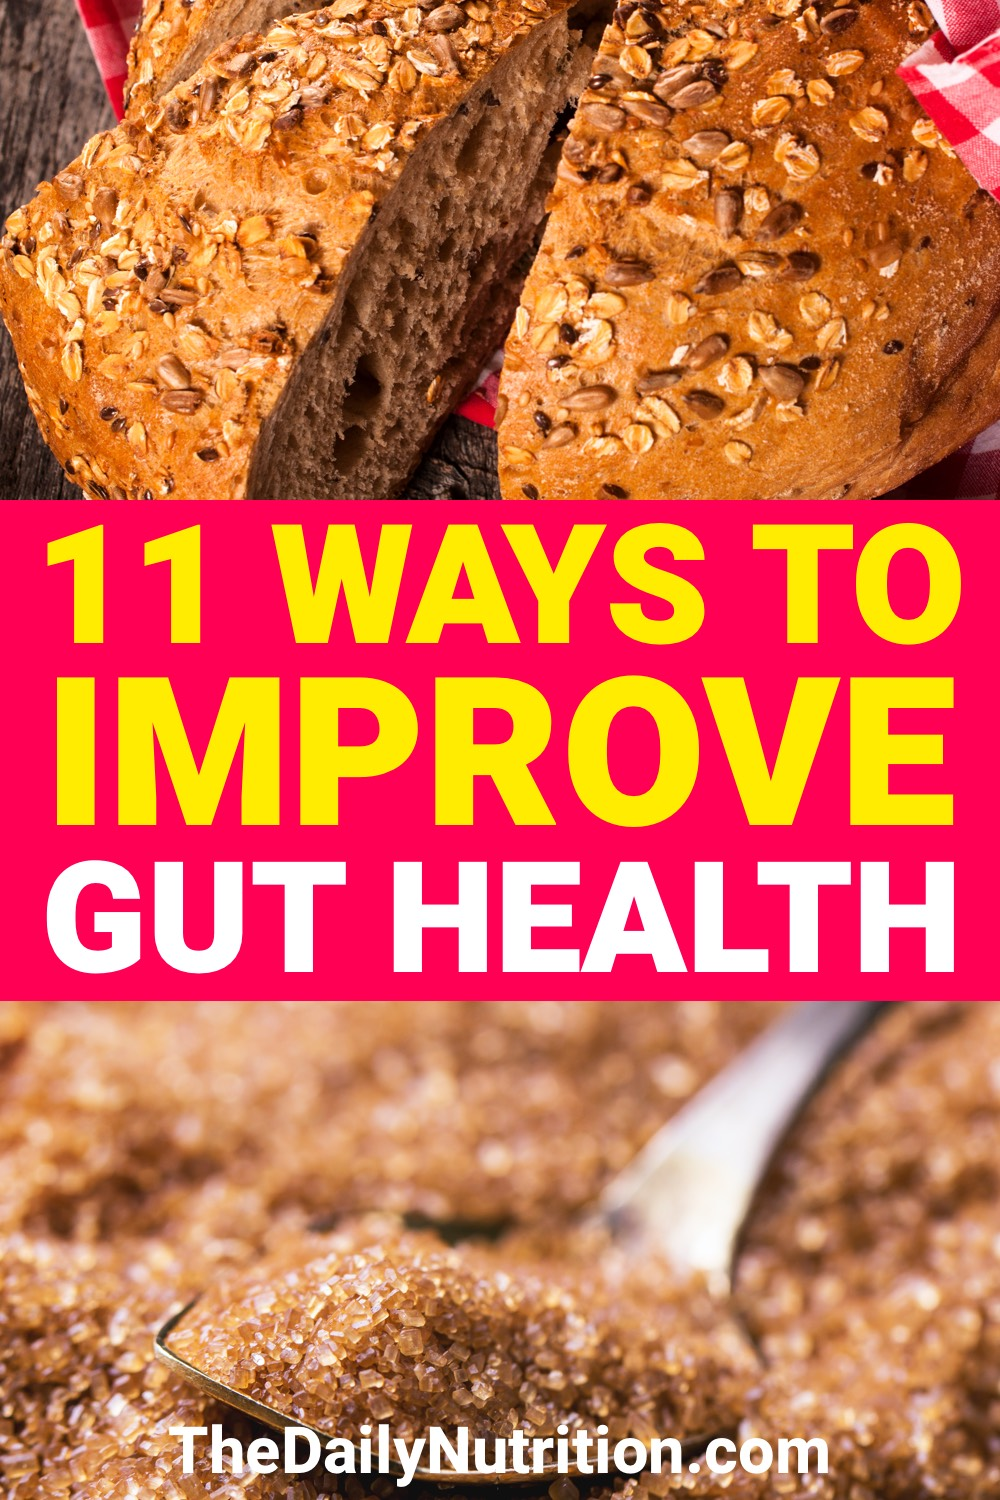 If you're ever wondering how to improve gut health, look here. You'll find 11 ways to improve gut health.